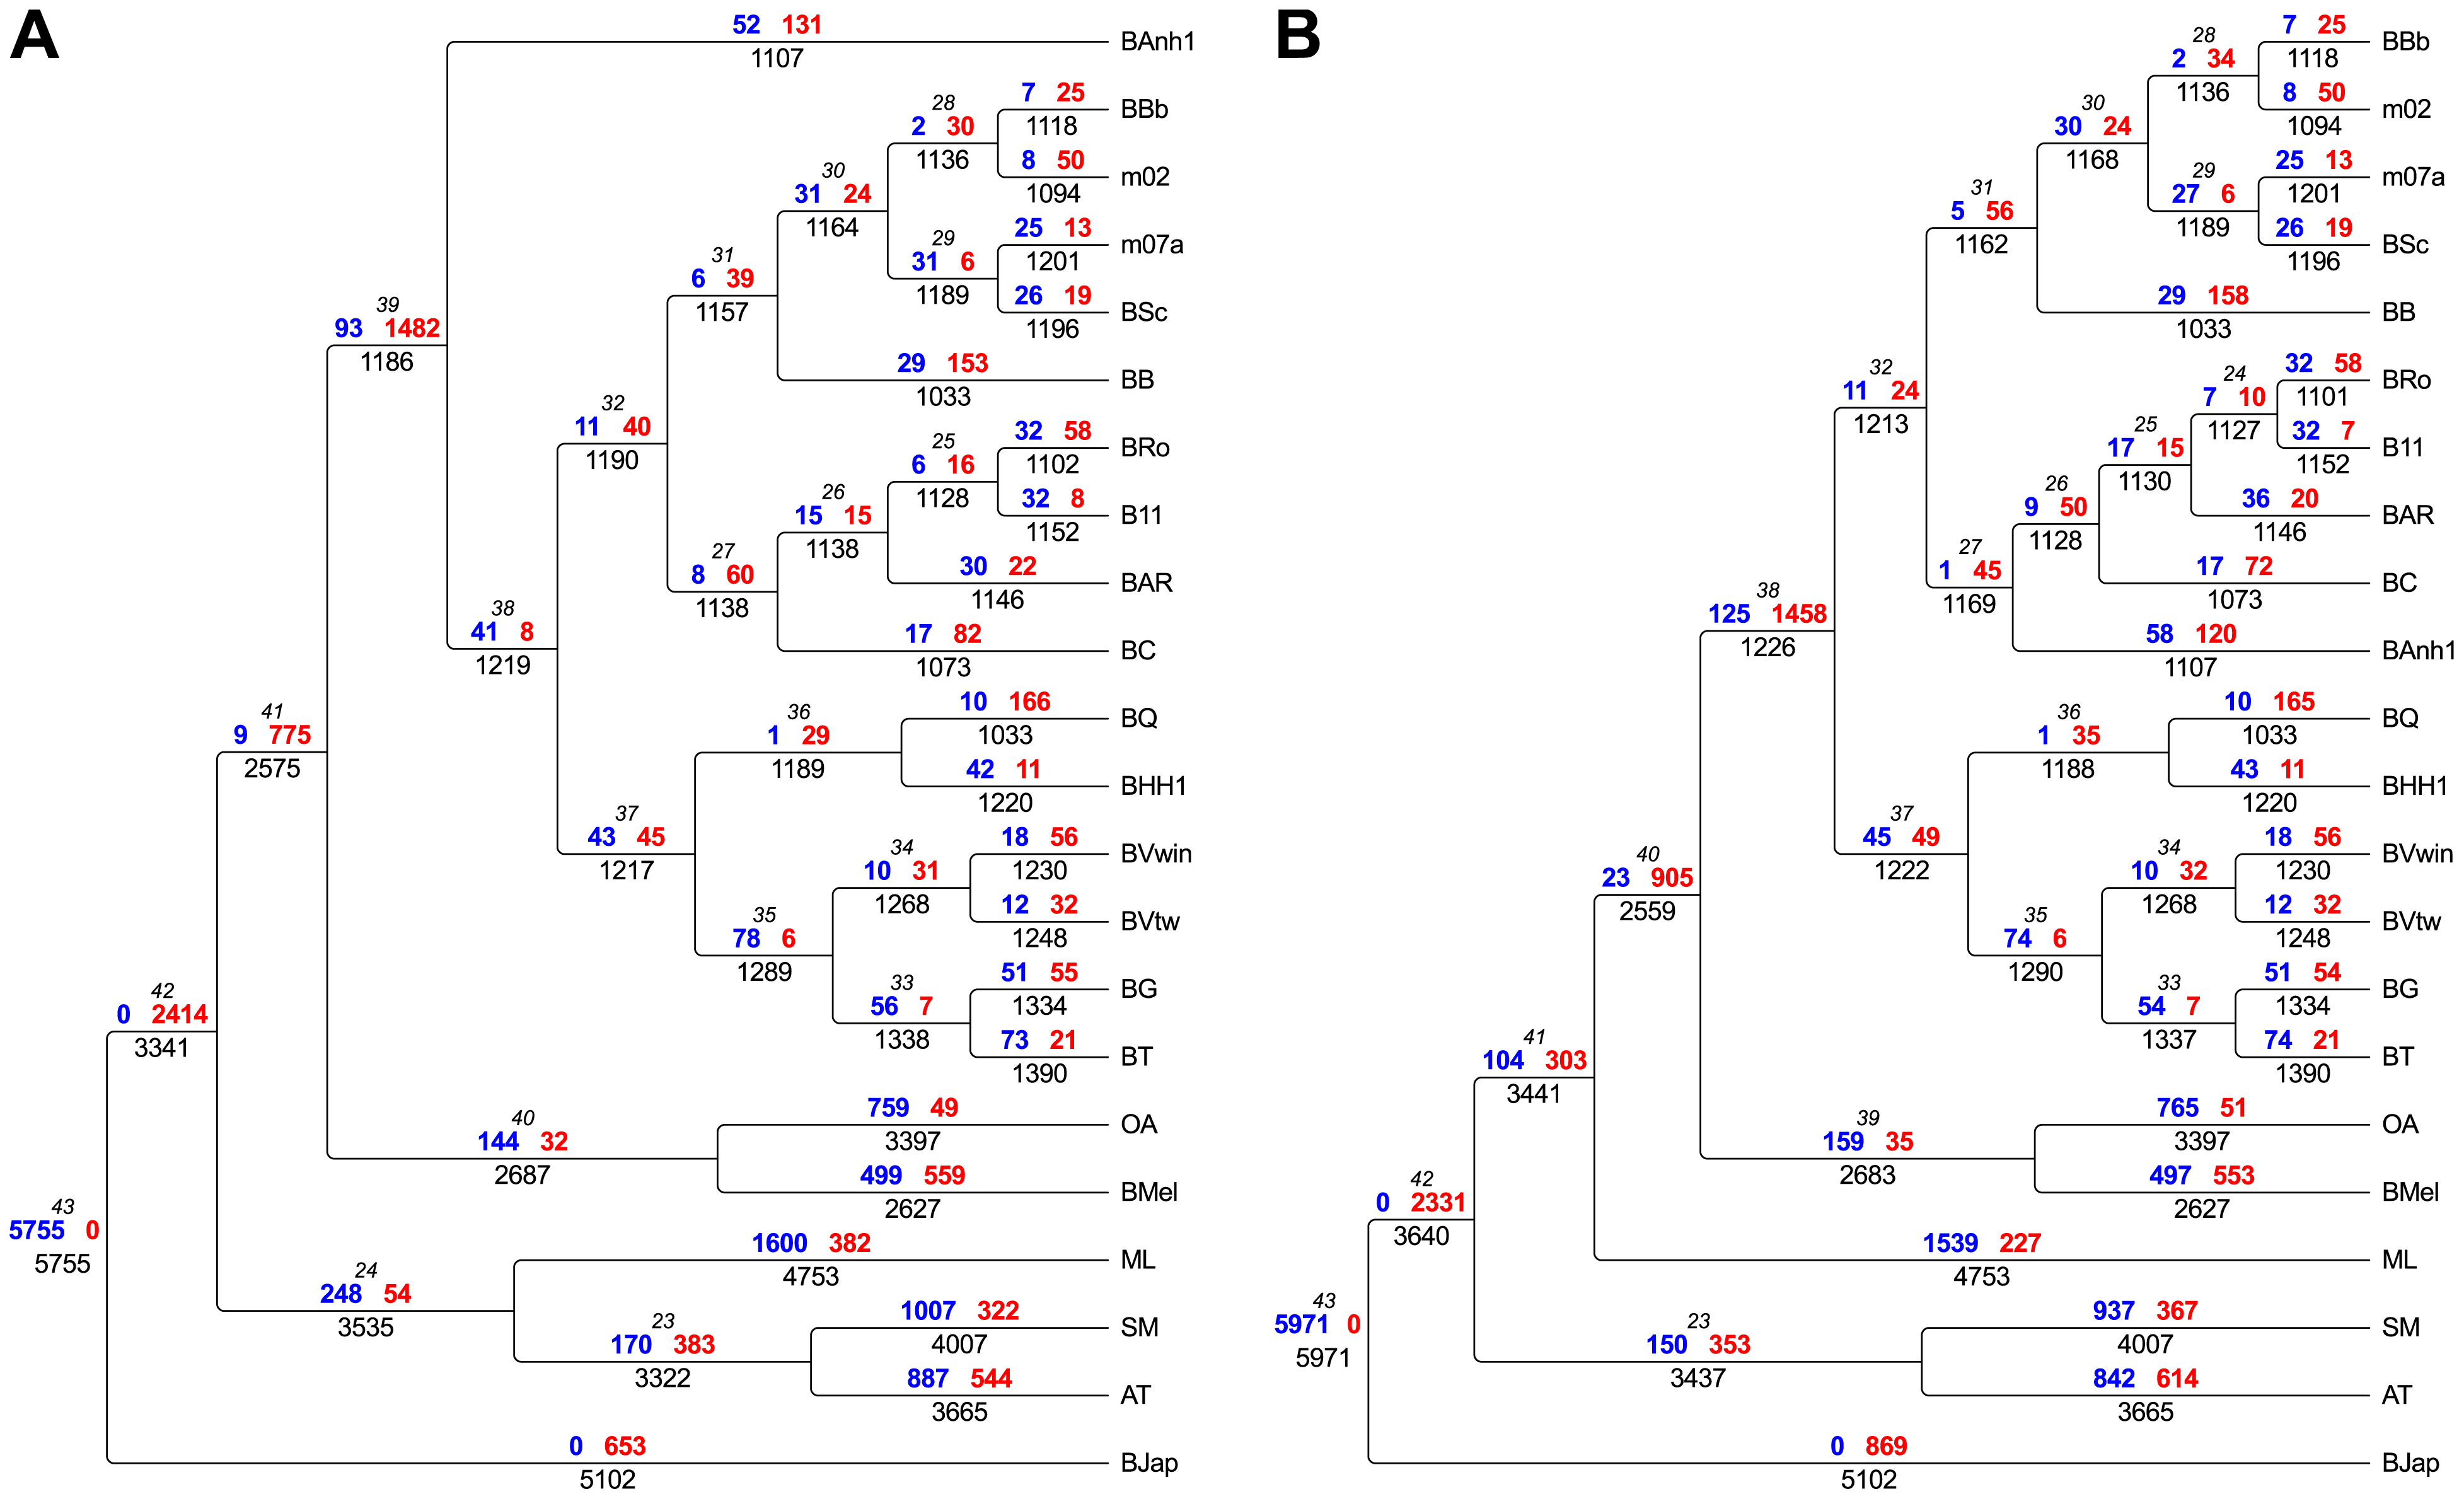 Flux of protein families in <i>Bartonella</i> and related outgroup species.